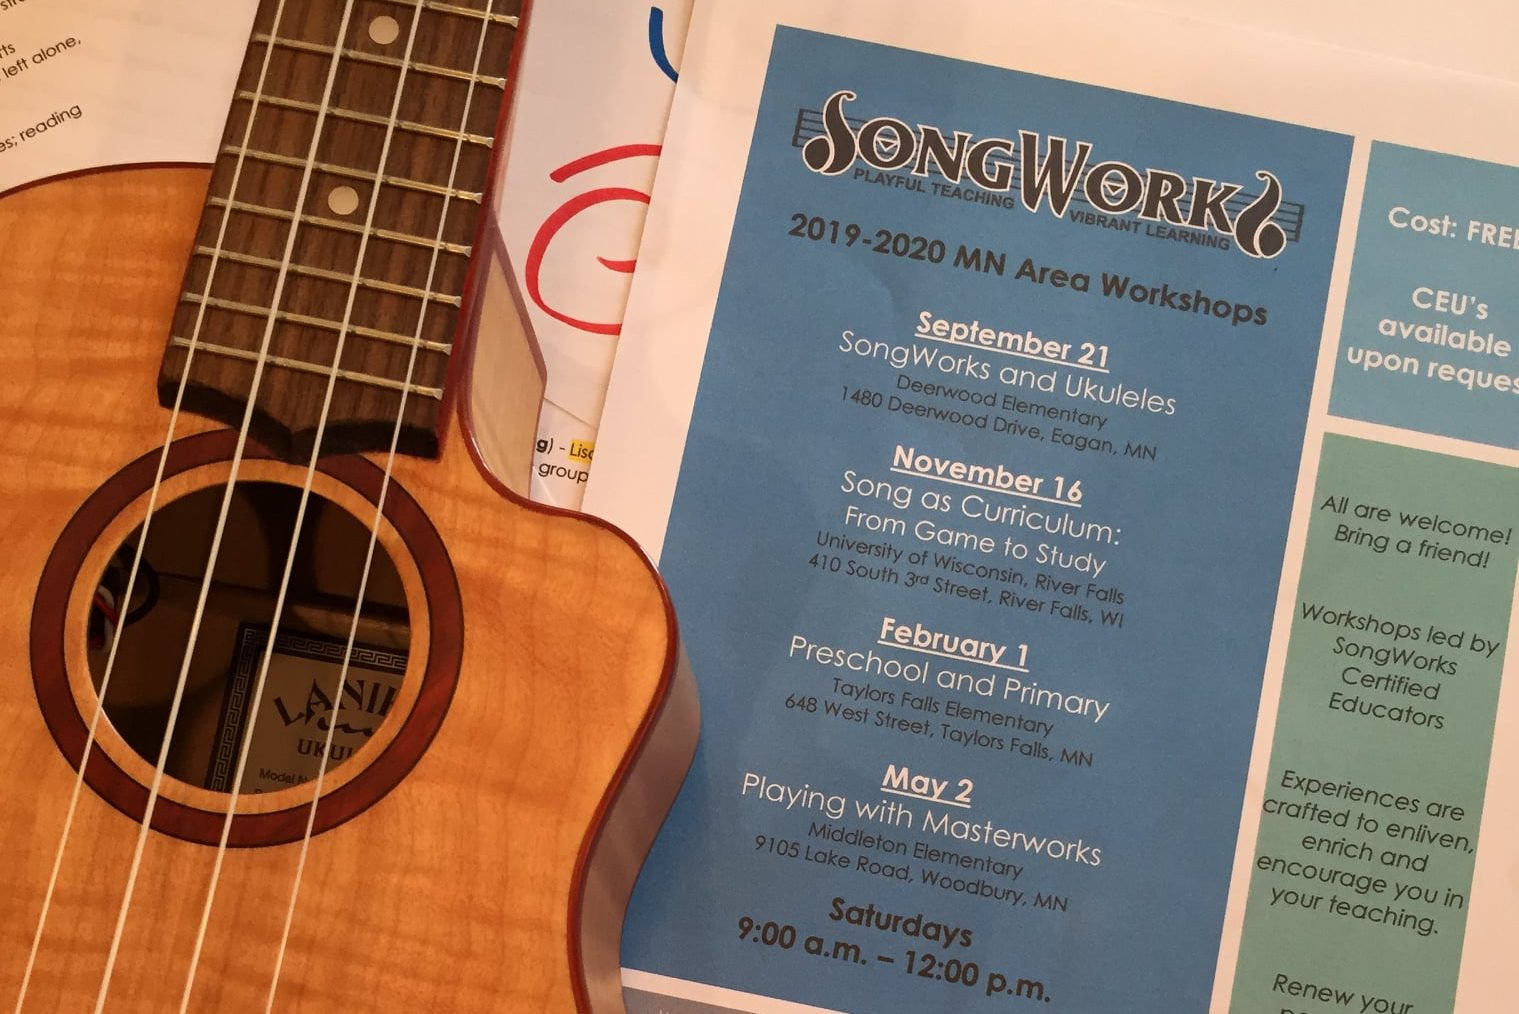 SongWorks in Practice Sessions